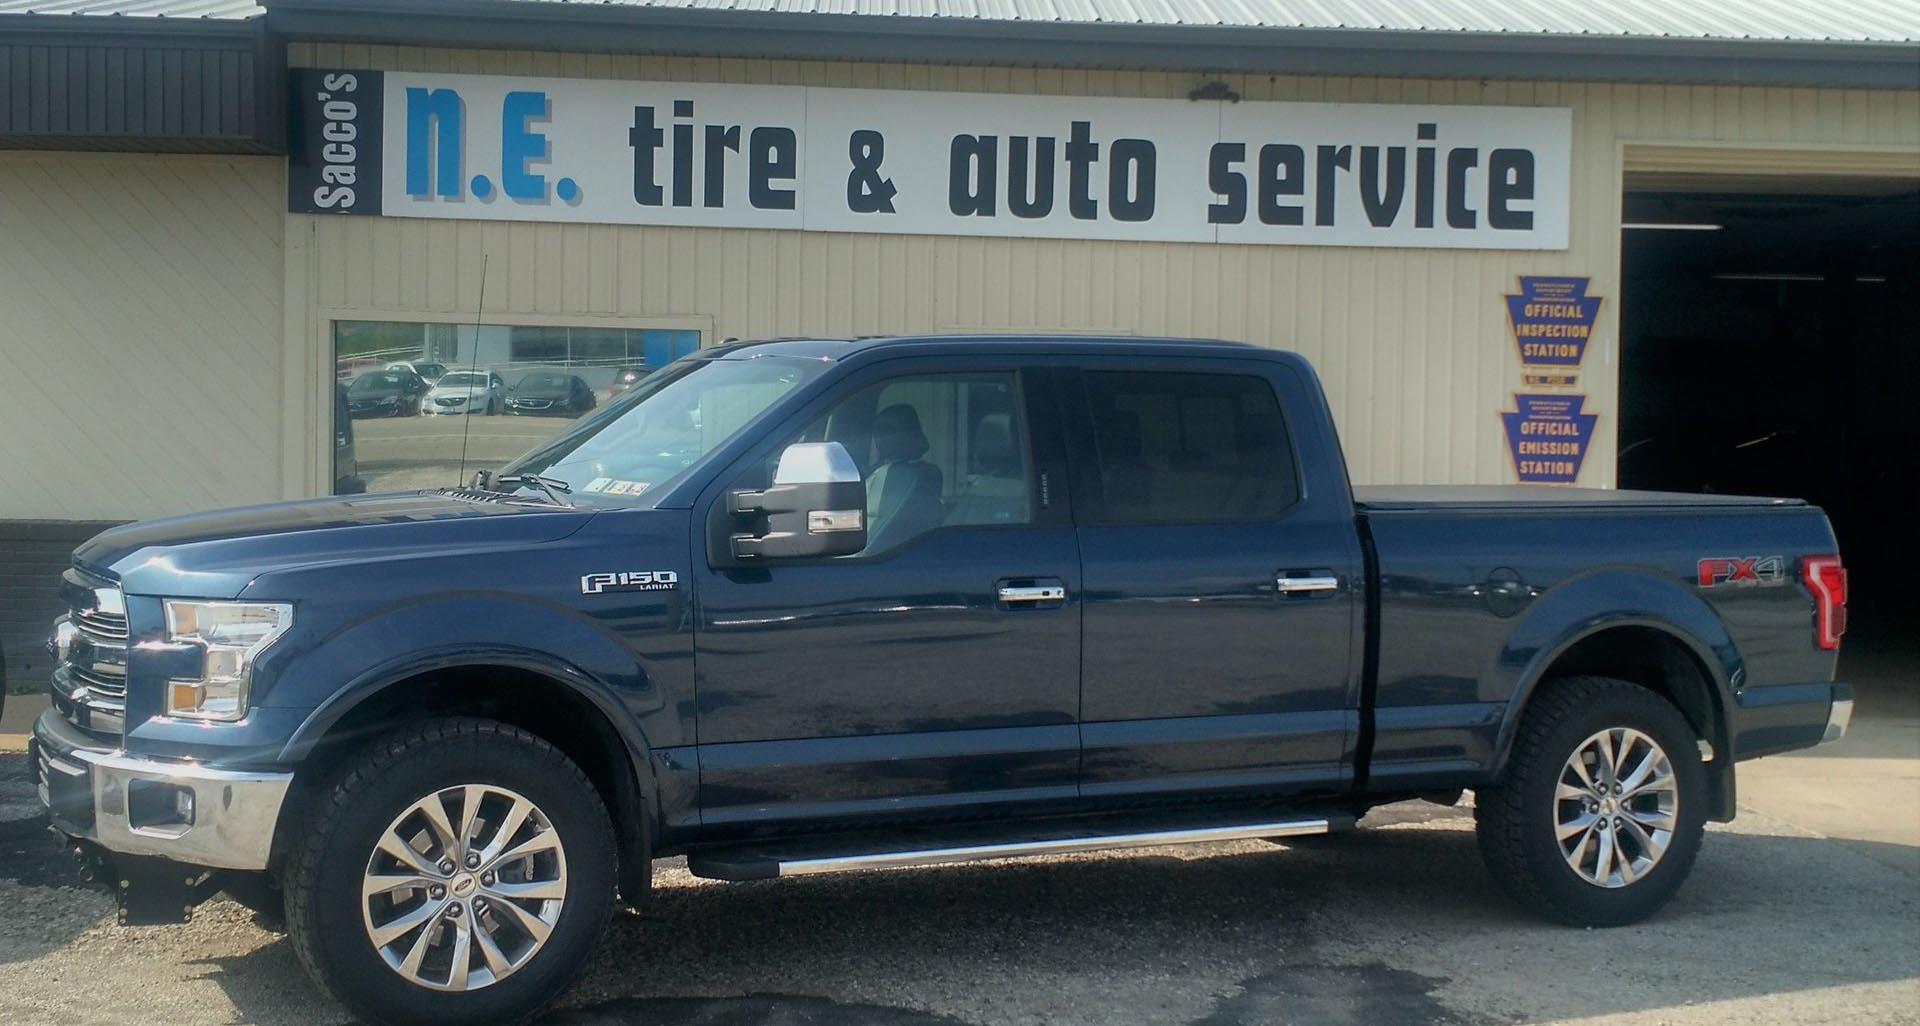 saccos tire service near erie pa